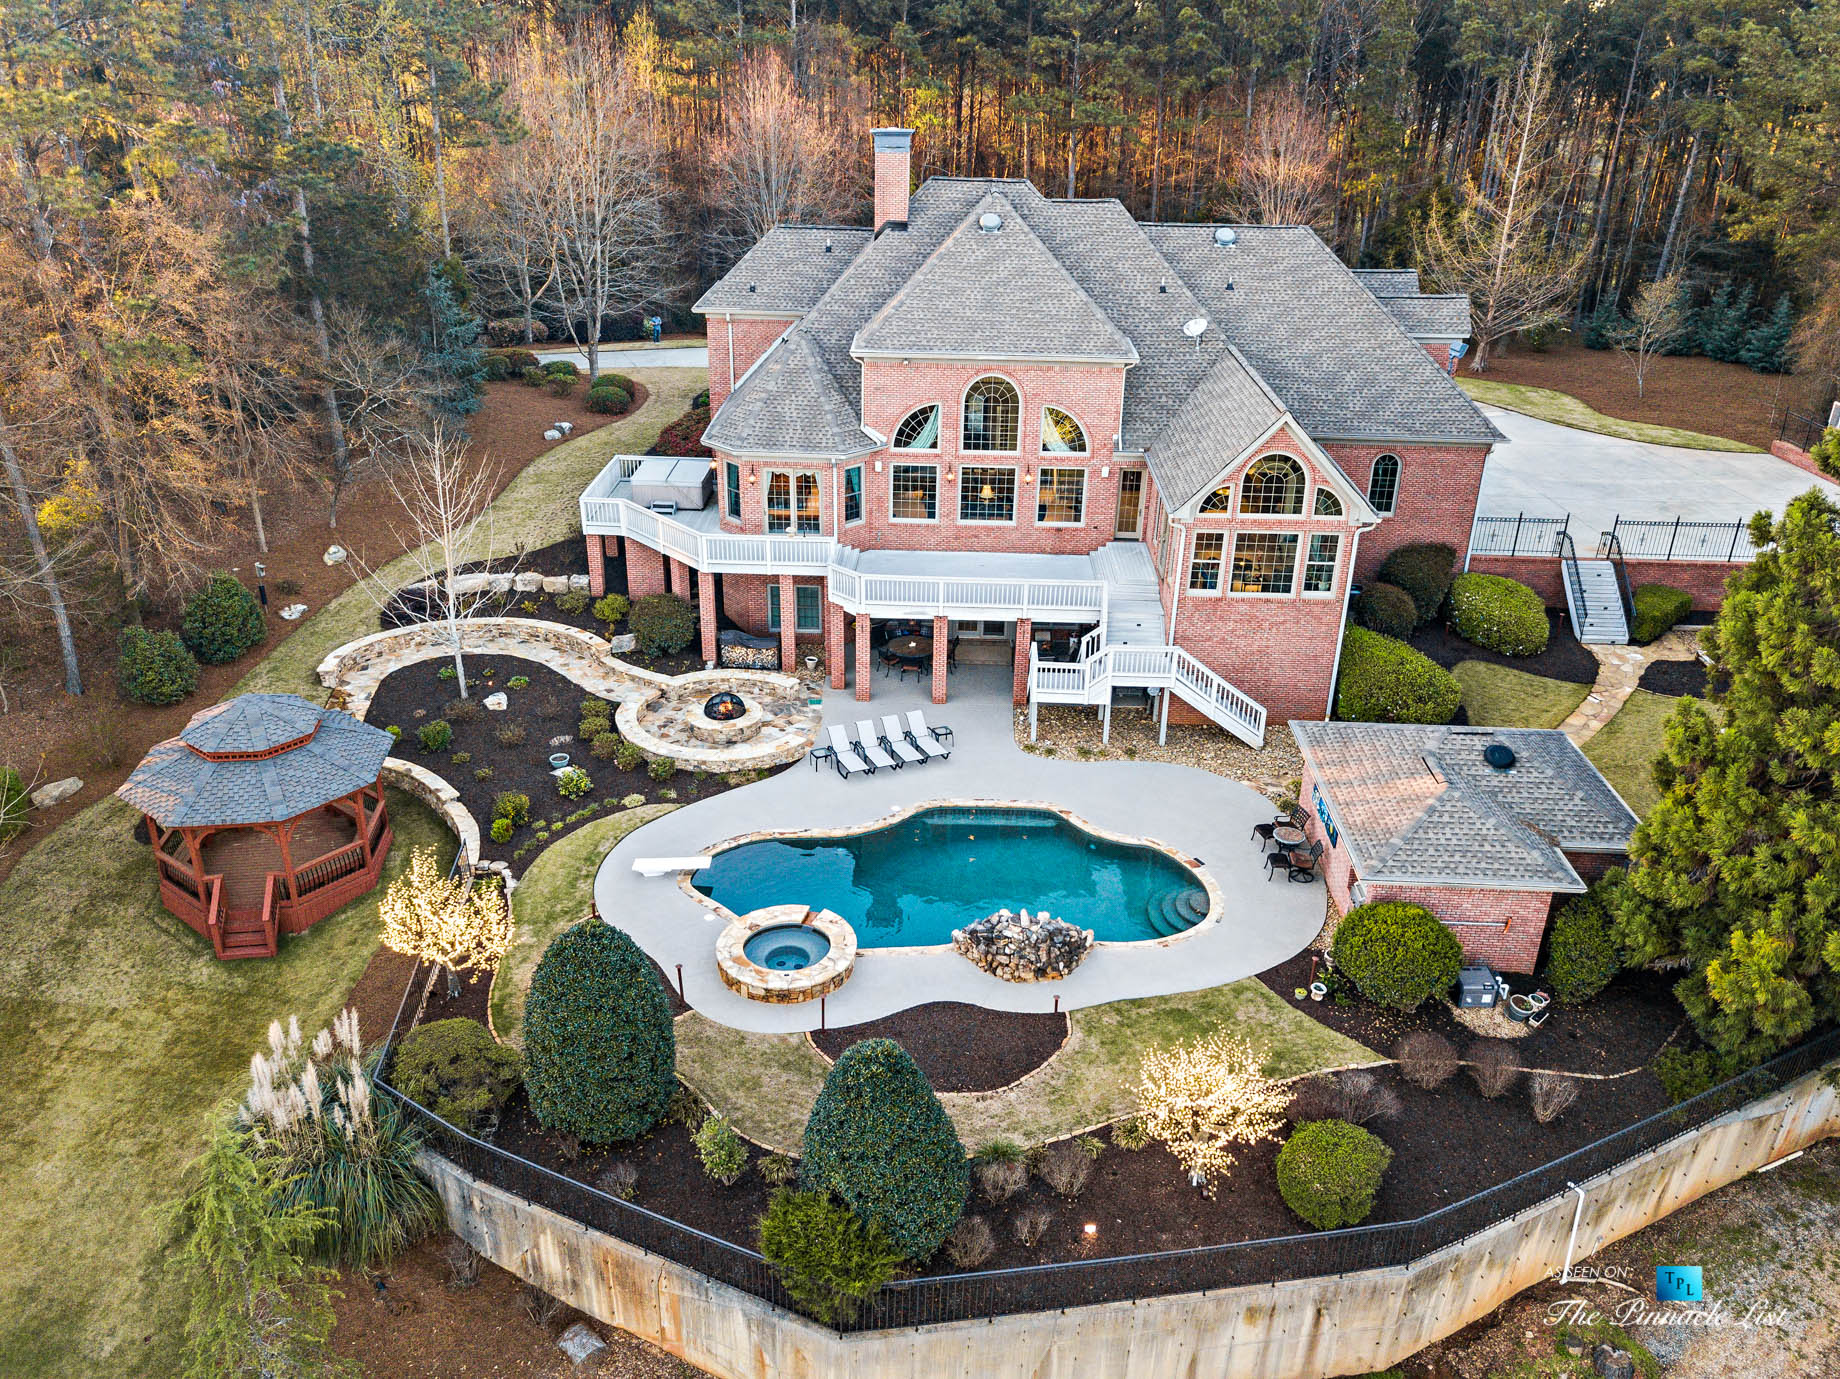 2219 Costley Mill Rd NE, Conyers, GA, USA - Drone Aerial Backyard Property View - Luxury Real Estate - Equestrian Country Home